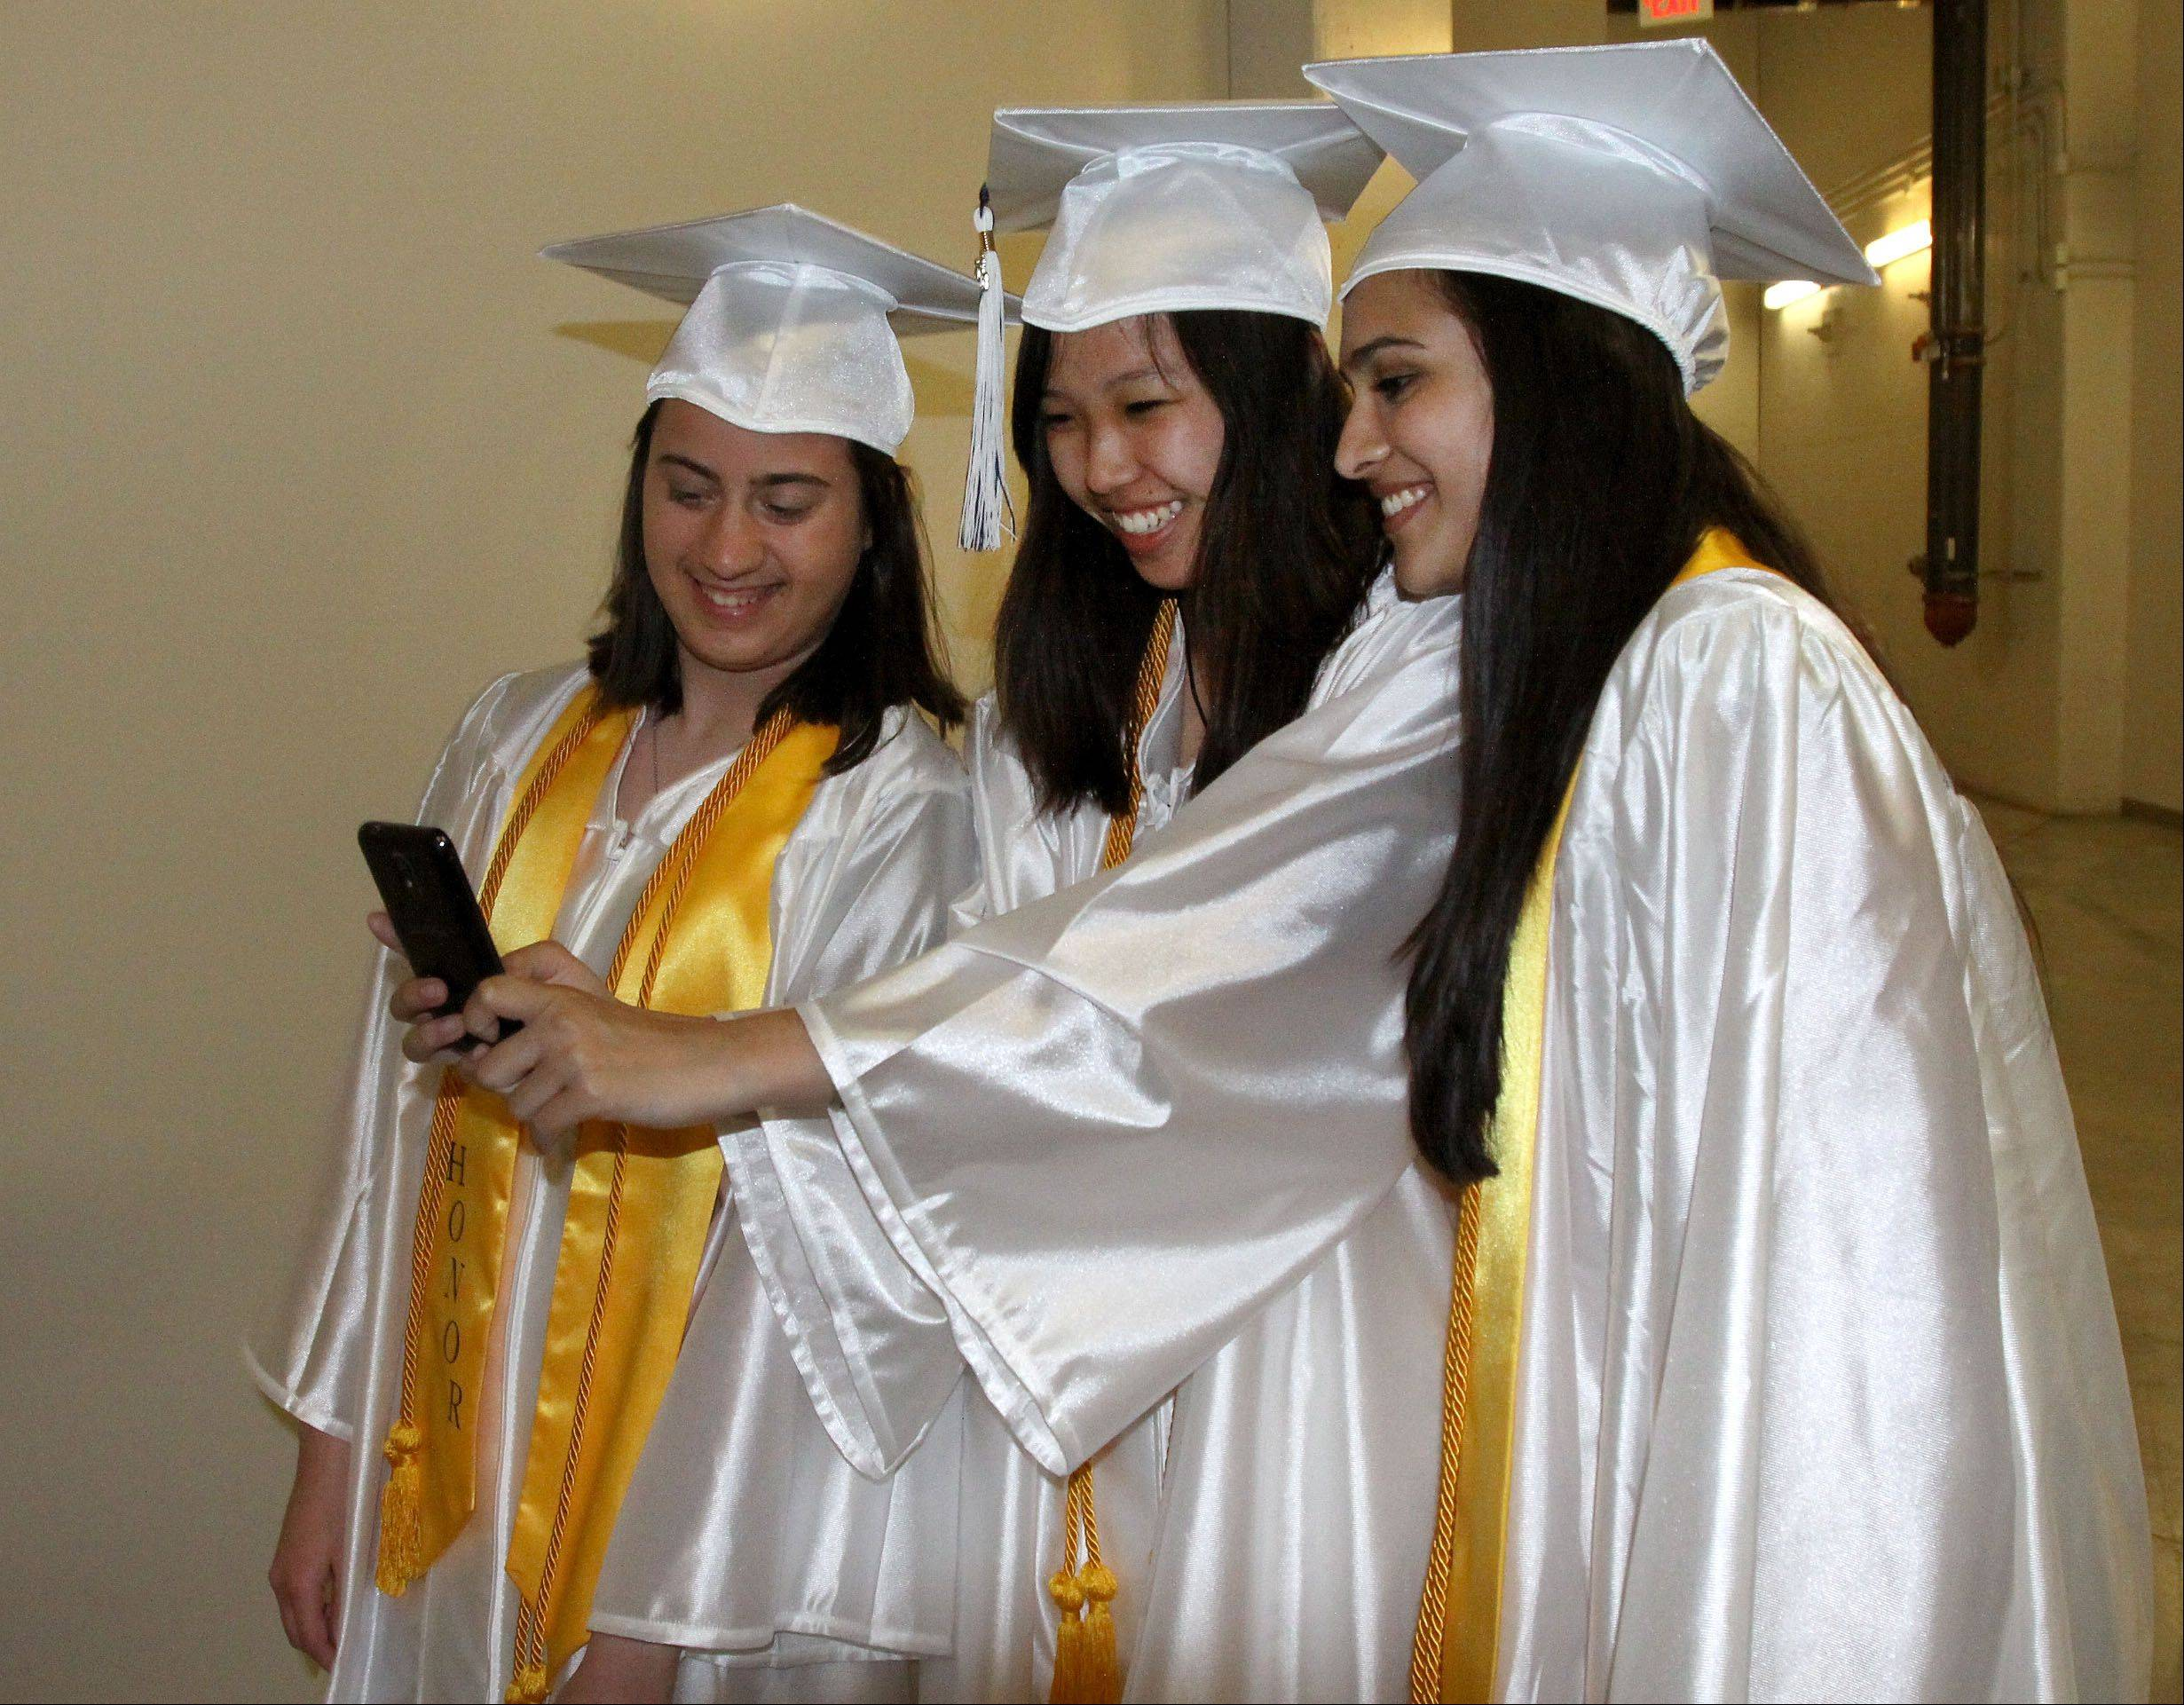 Left to right, Kaitlyn Szabo, Megan McAvoy and Anusha Adkoli get a quick photo before the Lake Park graduation at the Sears Centre in Hoffman Estates on Monday.